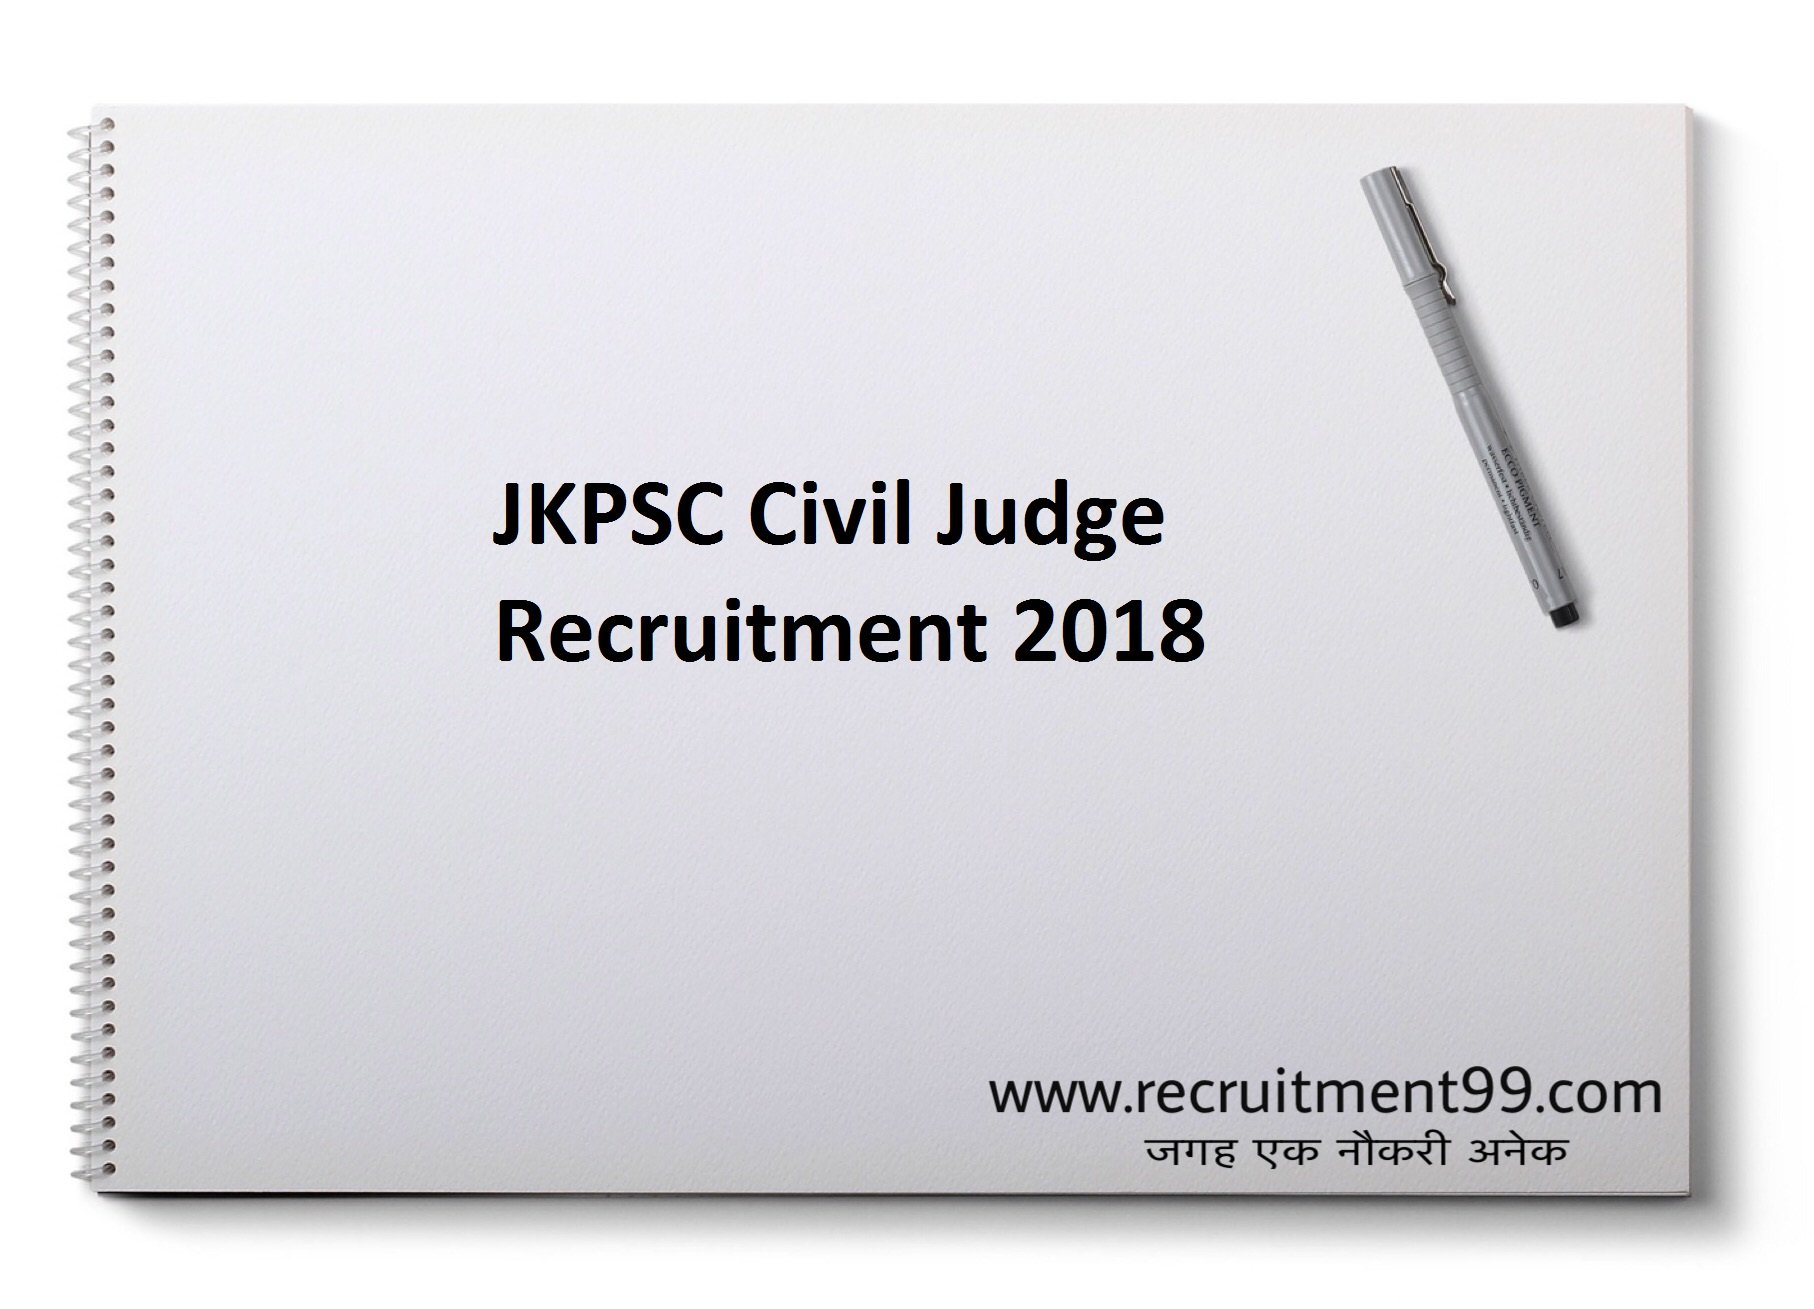 JKPSC Civil Judge Recruitment Admit Card Result 2018